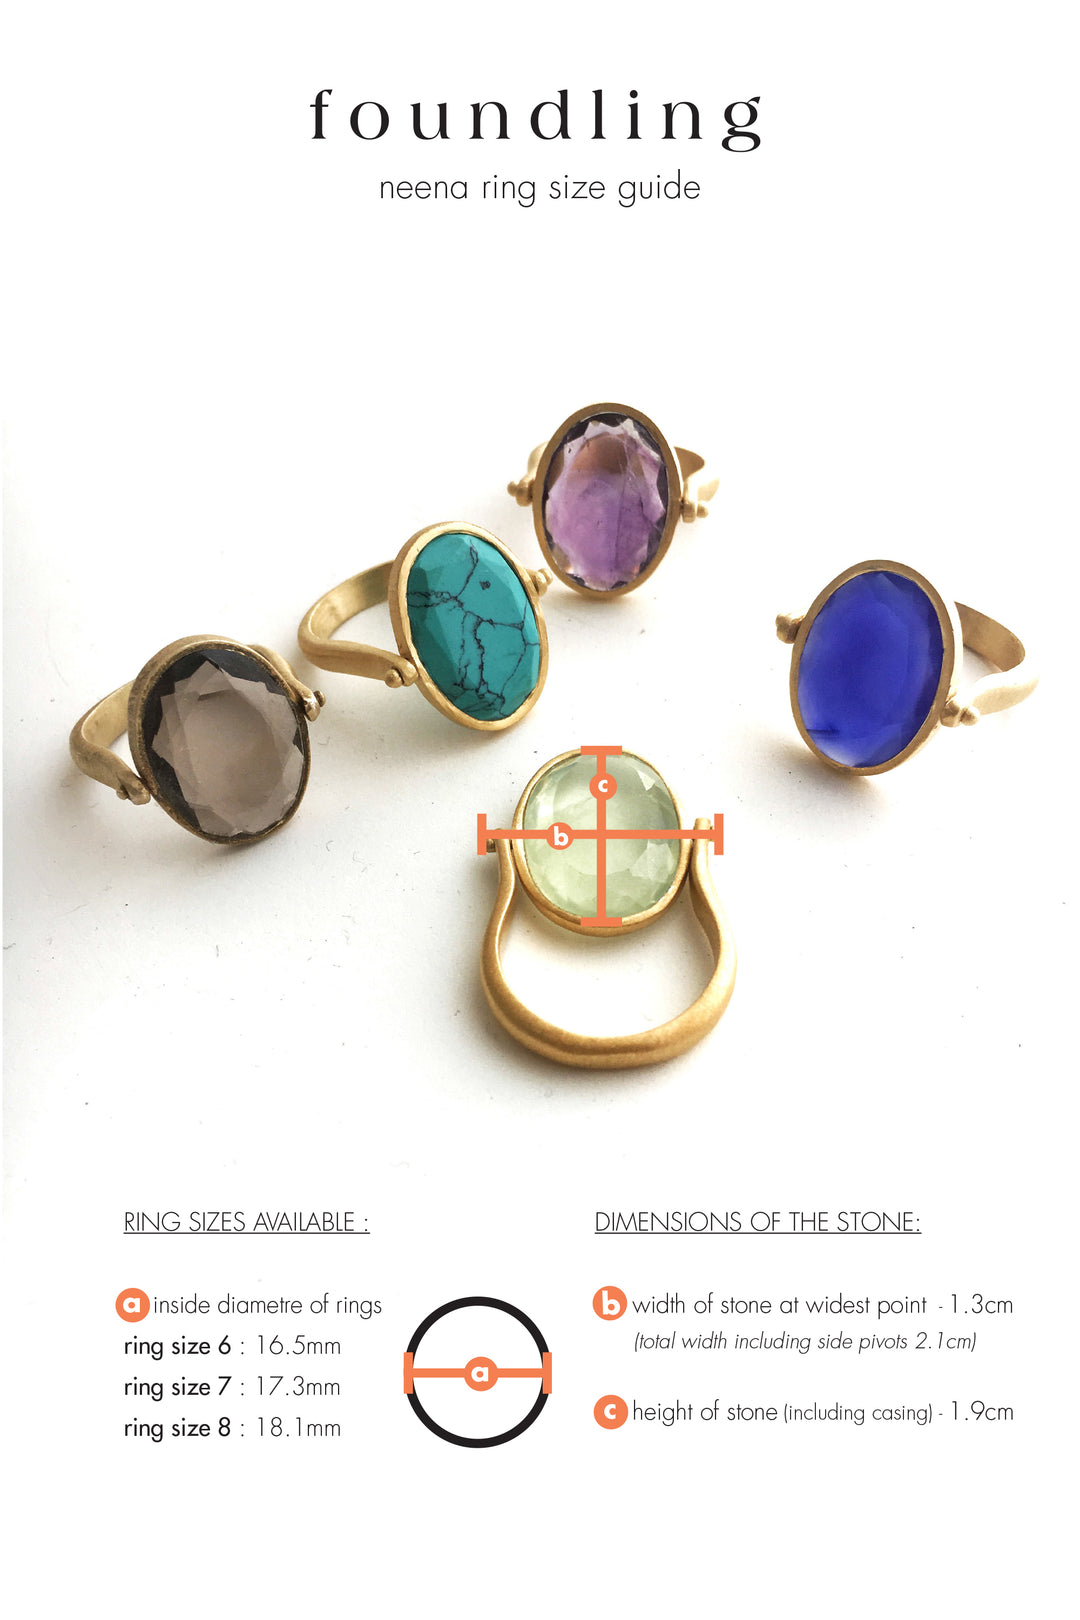 cocktail ring neena size guide